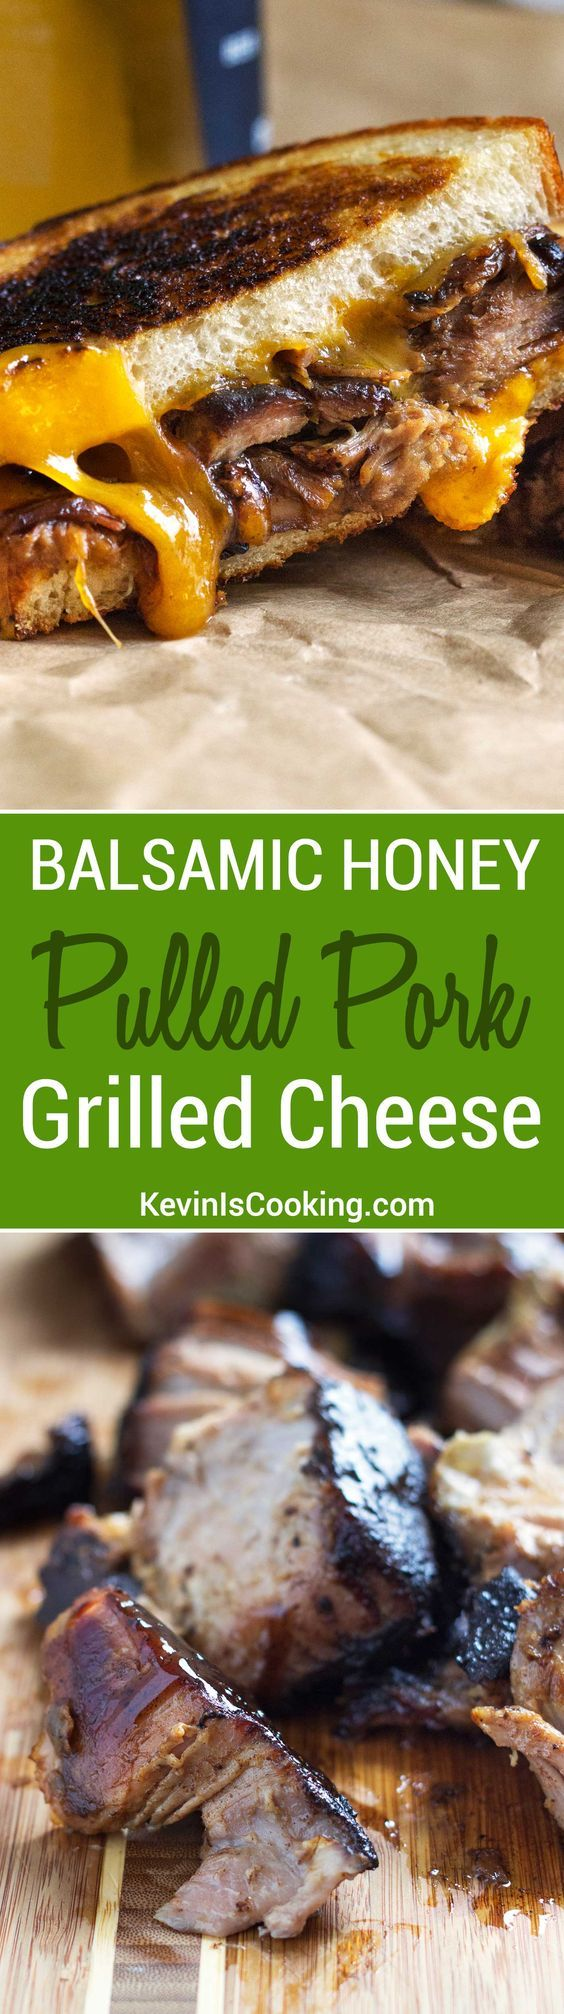 A huge favorite with friends and family, plus it's so easy. Once you start eating grilled cheese with pulled pork and honey theres no going back!